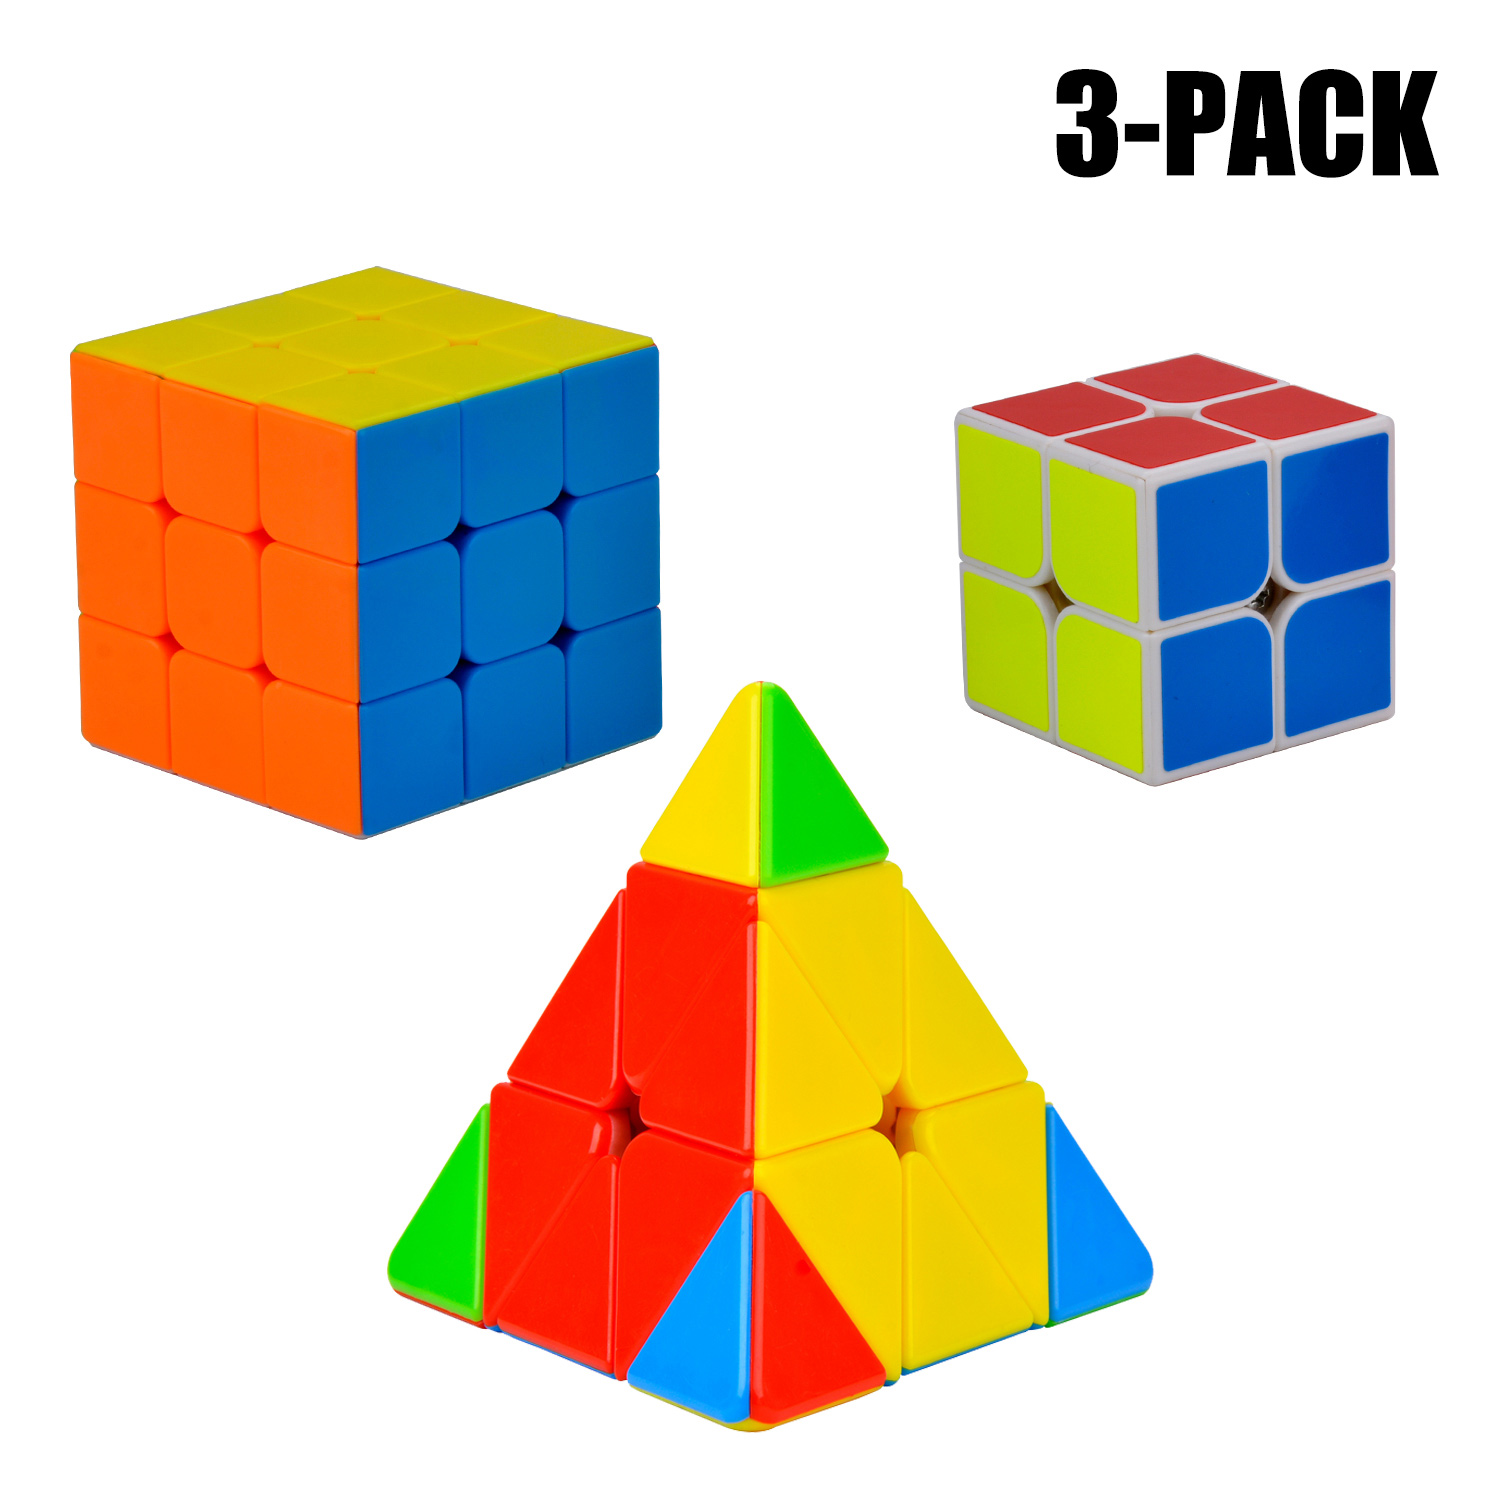 3 Pack Speed Cube, Bangcool Professional Stickerless Magic Cube Puzzle Toy for Adults... by Bangcool